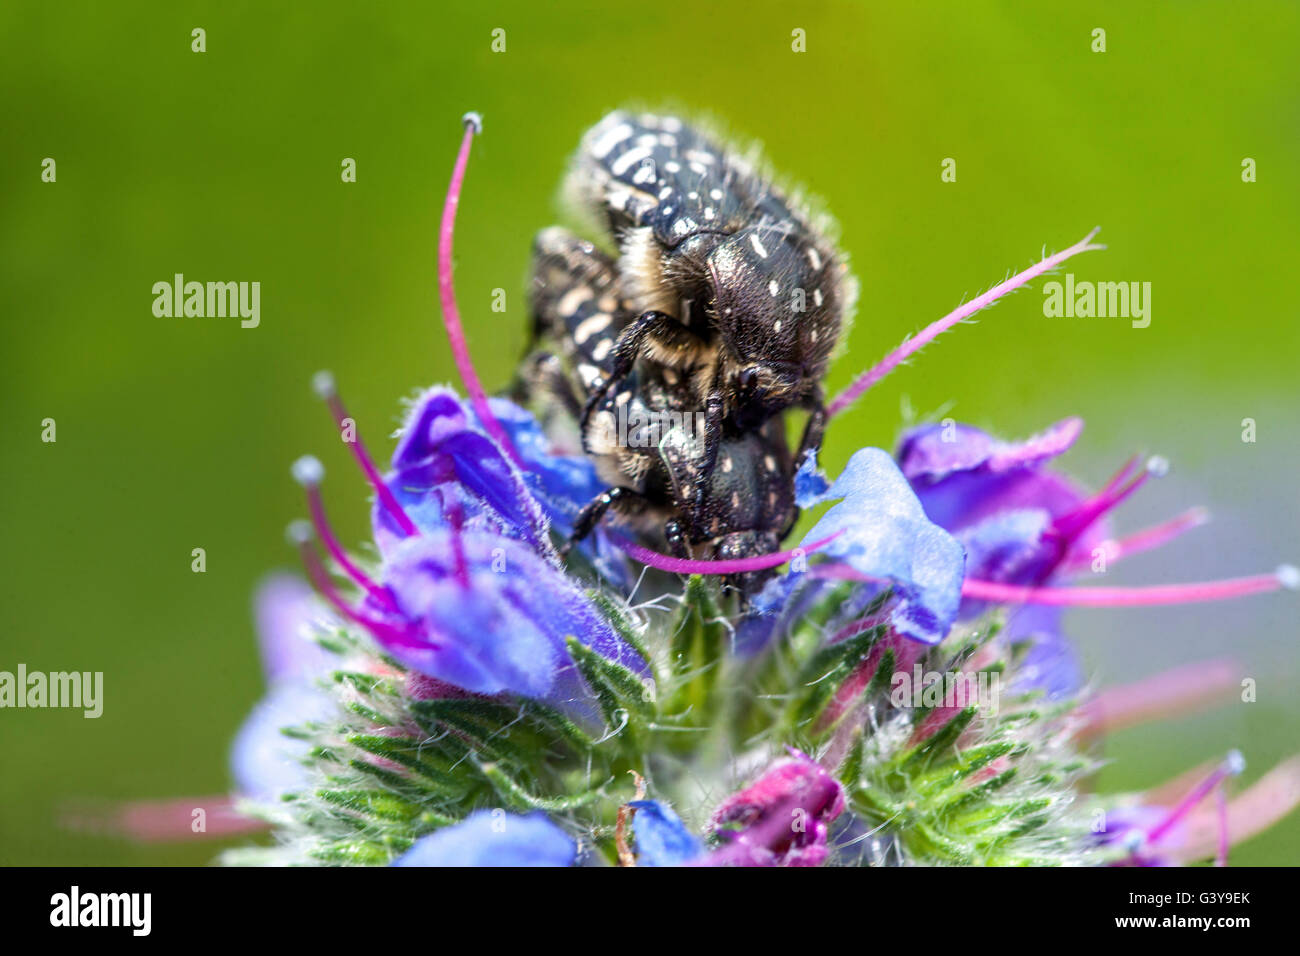 Oxythyrea funesta White-spotted Rose Beetle mating on a Echium vulgare - Stock Image